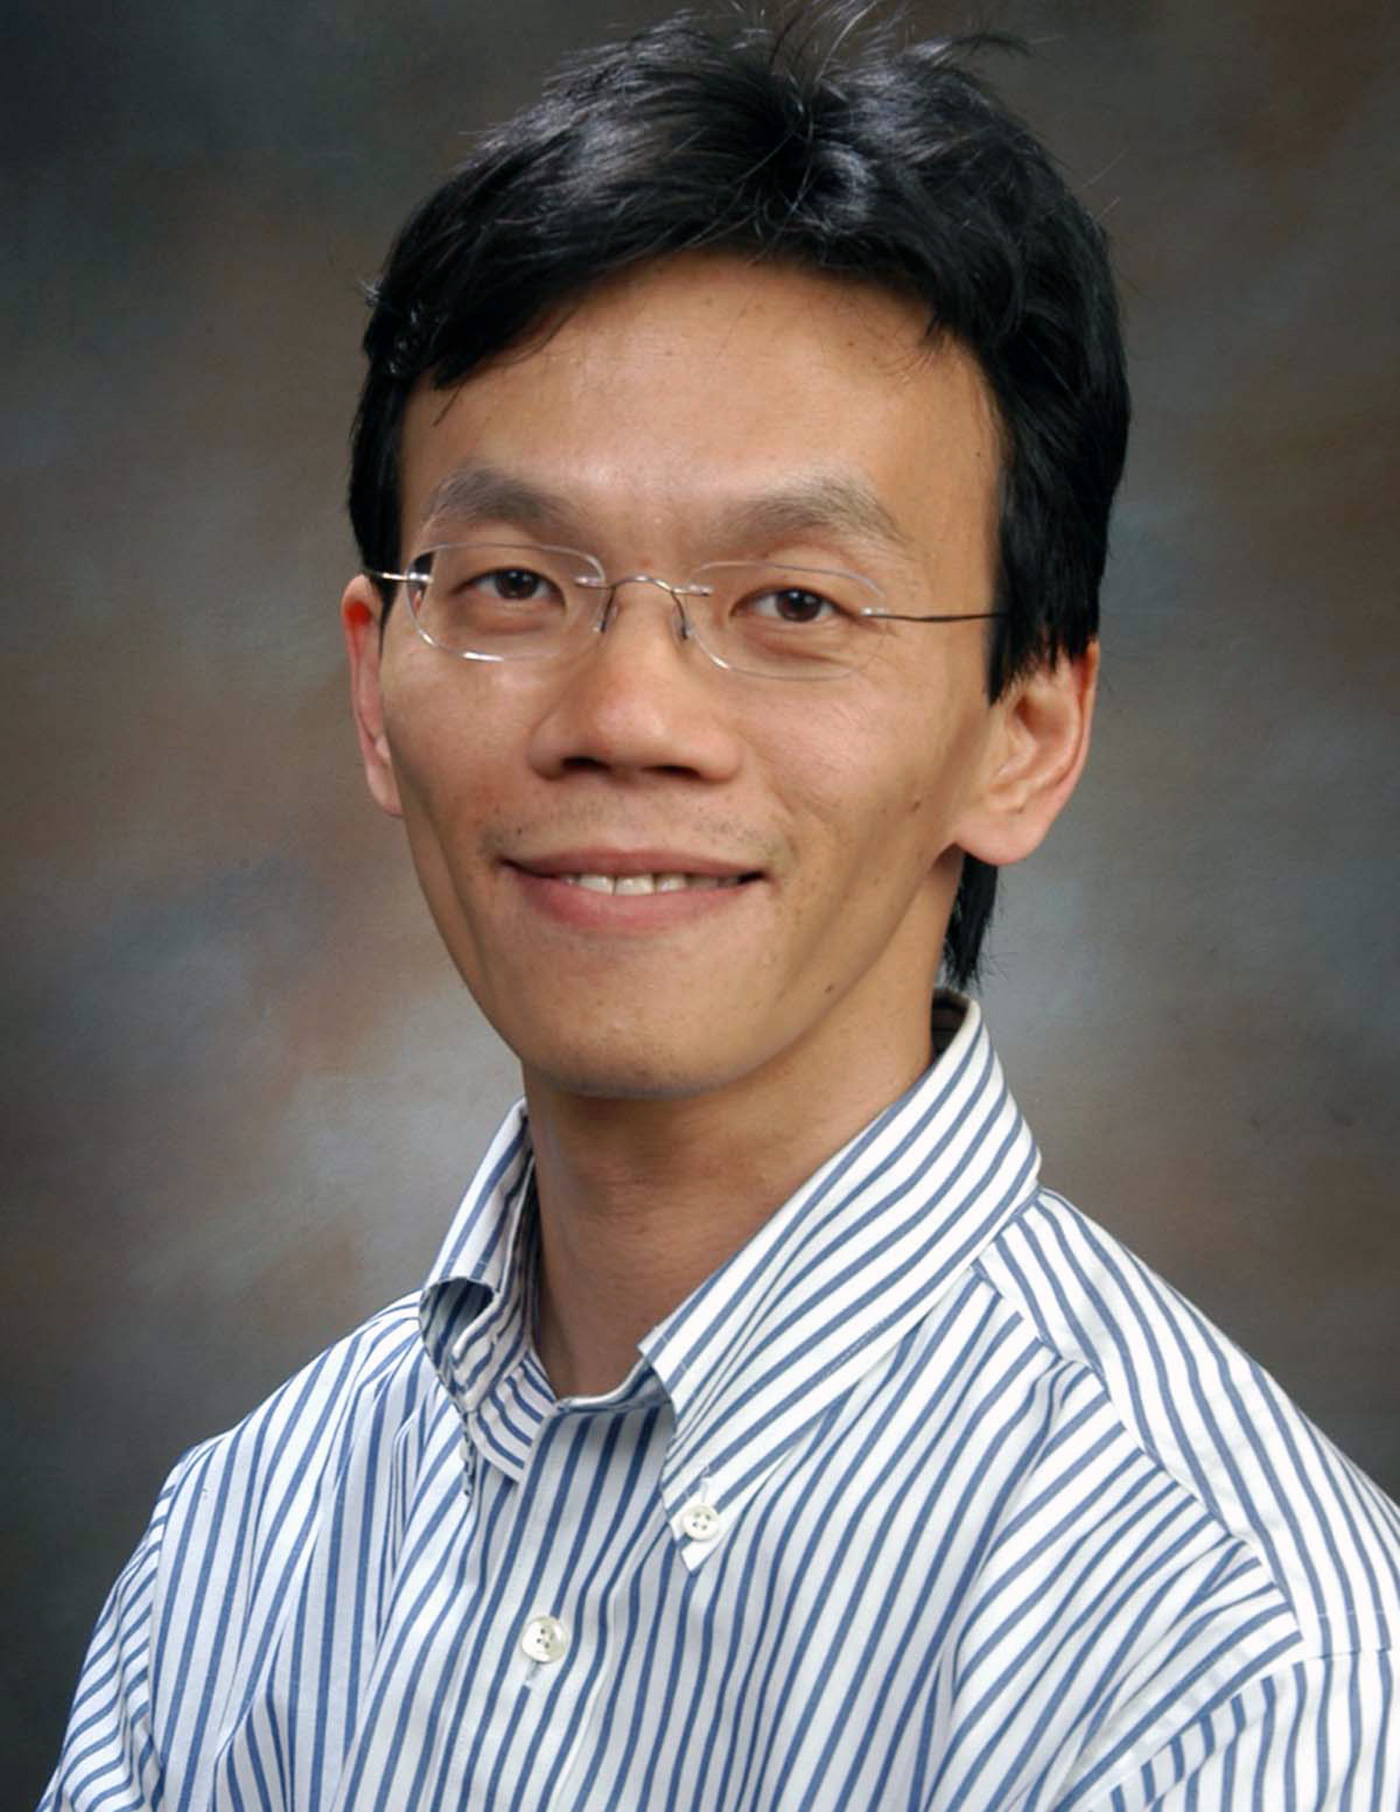 Neville Nien Huei Jiang  is an Assistant Teaching Professor in the Economics Department at UMass Lowell